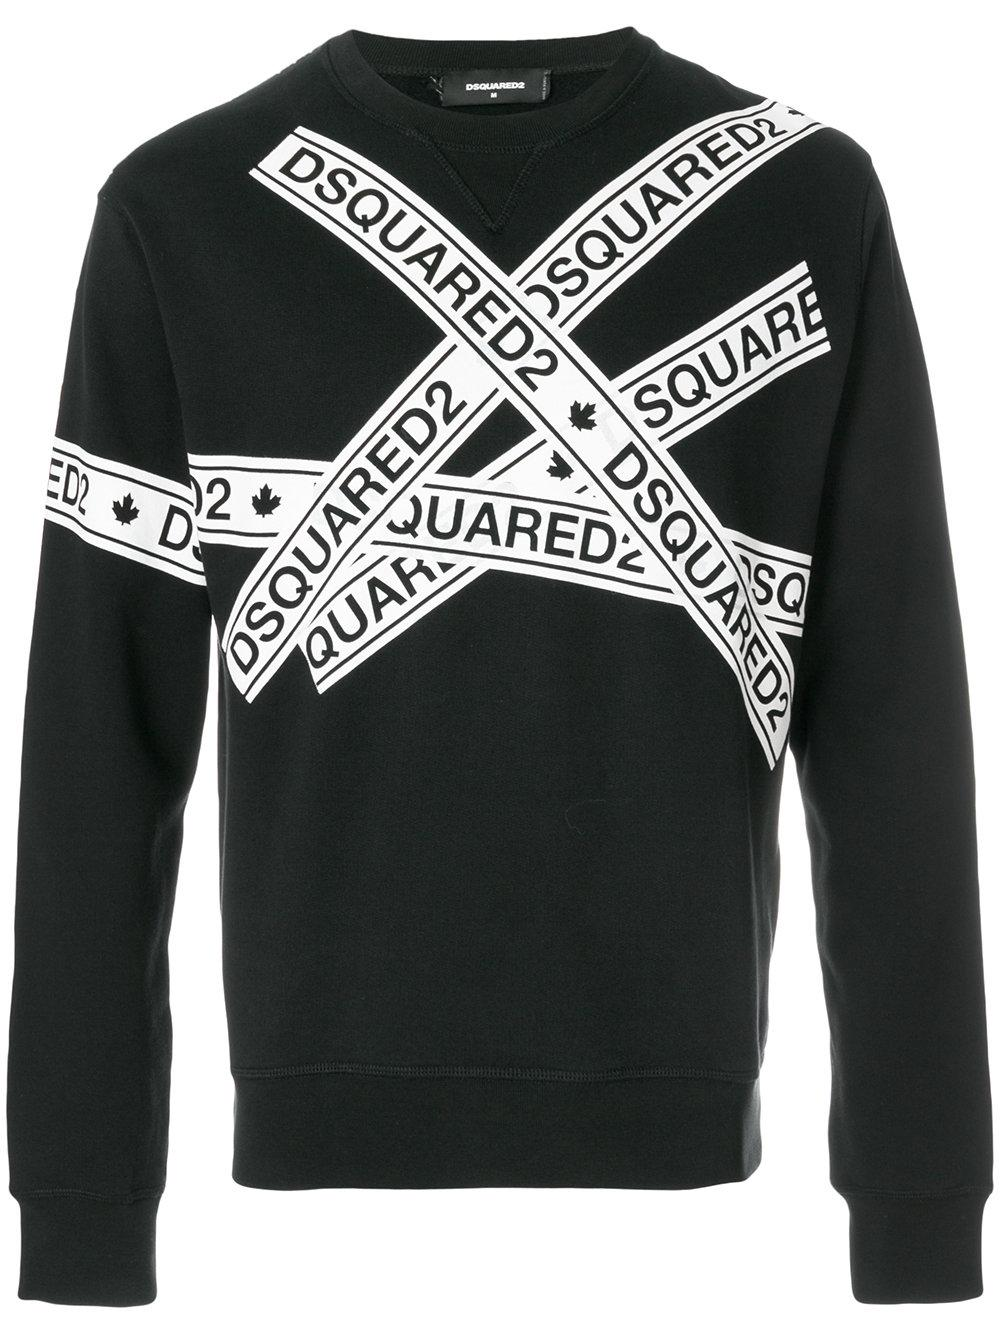 a46209bb5 Dsquared2 Logo Tape Cotton Jersey Sweatshirt In Black | ModeSens